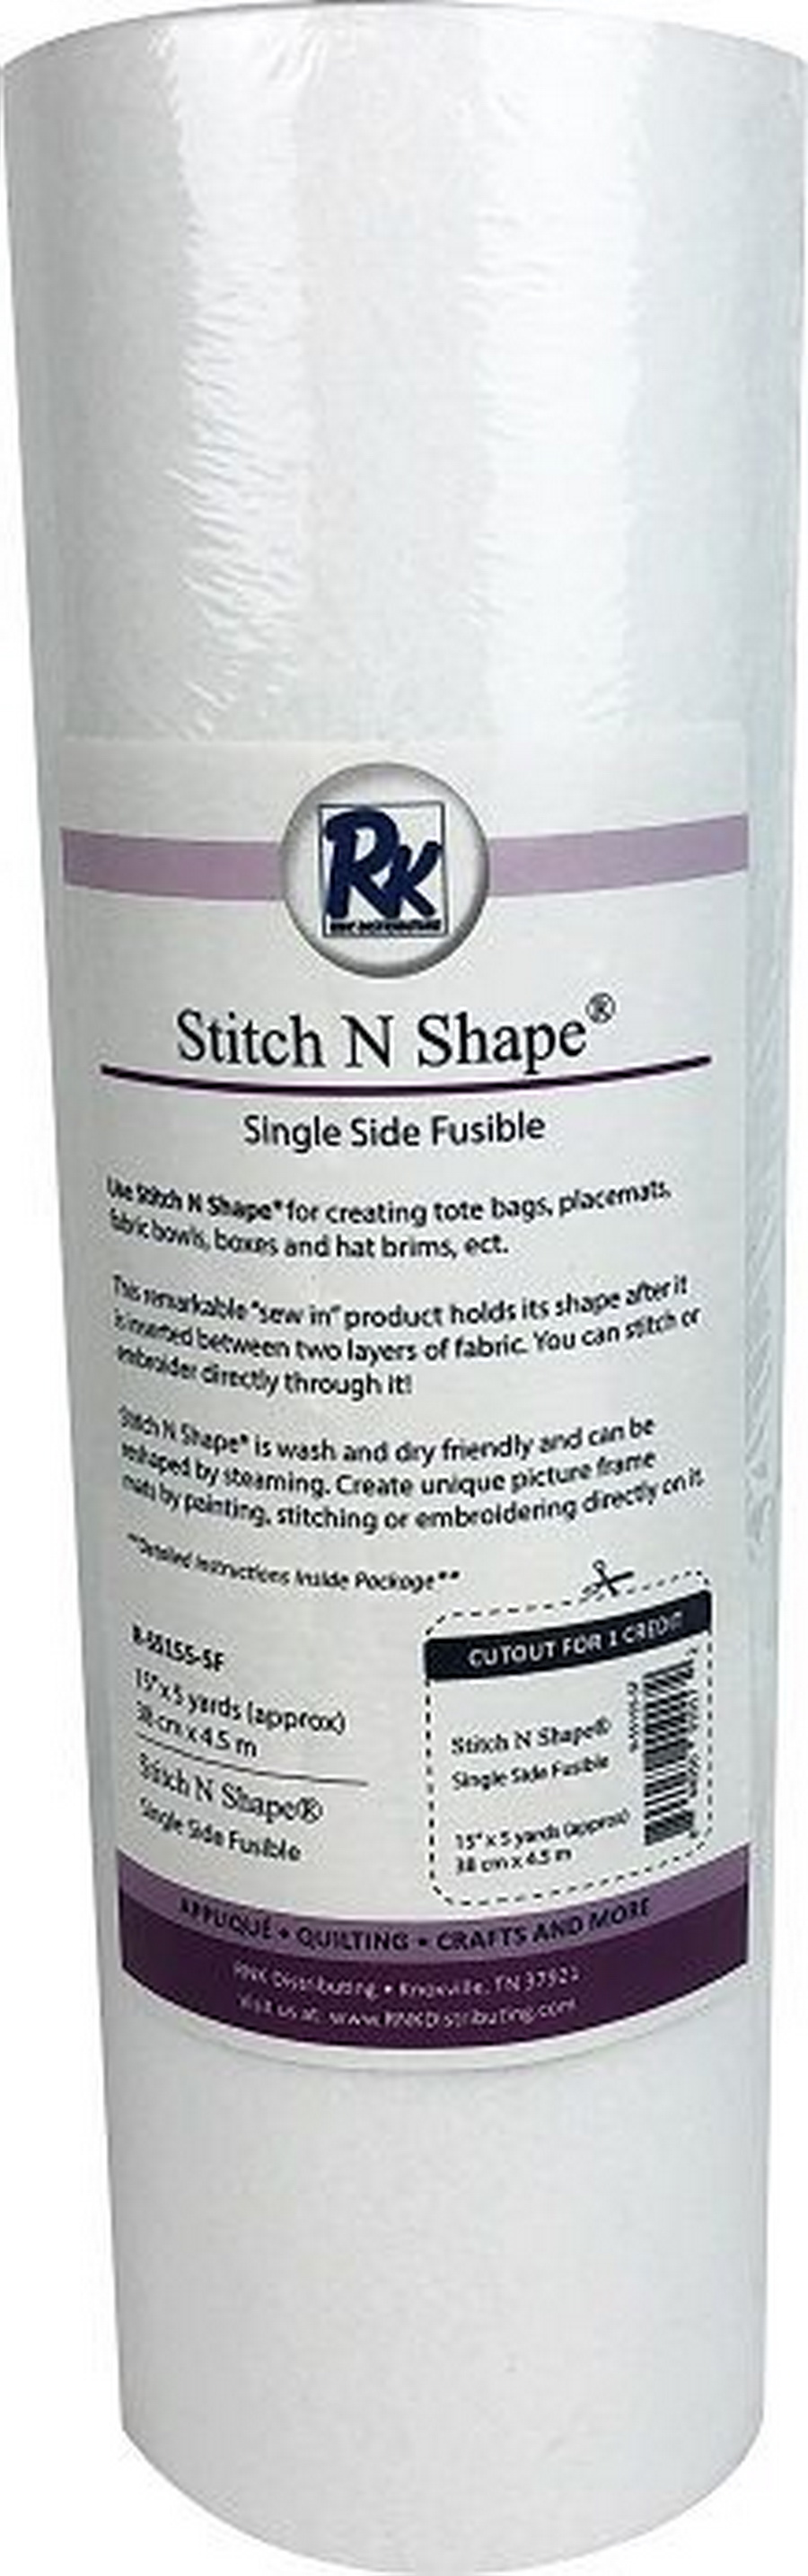 """RNK Stitch N Shape Single Side Fusible - 15"""" x 5yds"""